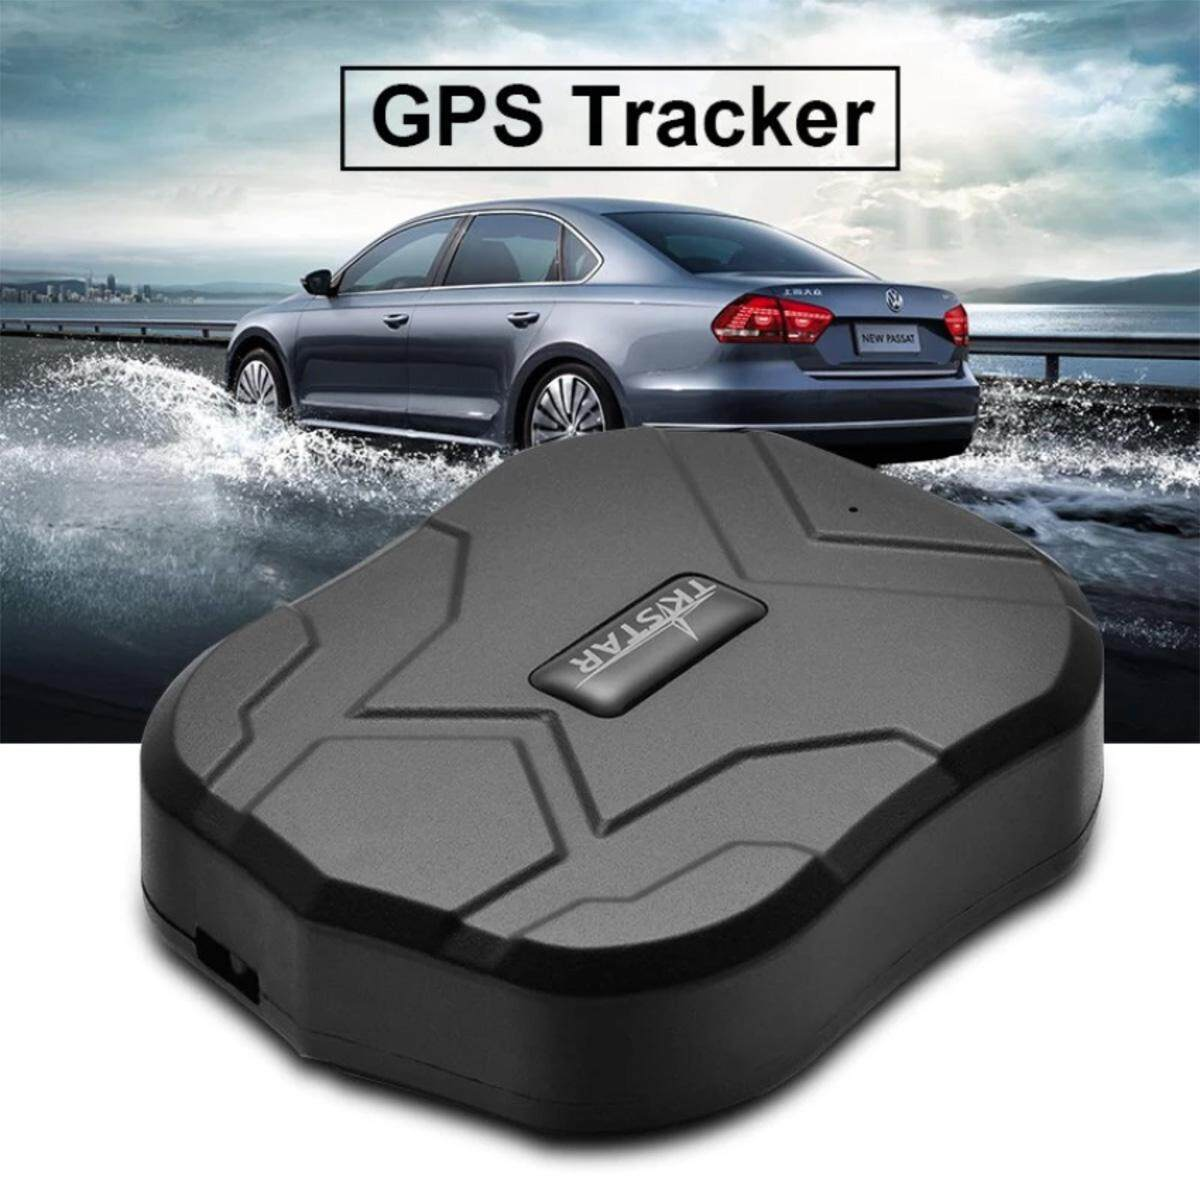 Tk905 Waterproof Vehicle Car Gps Tracker Locator - Black (with Box) By Sea Center.